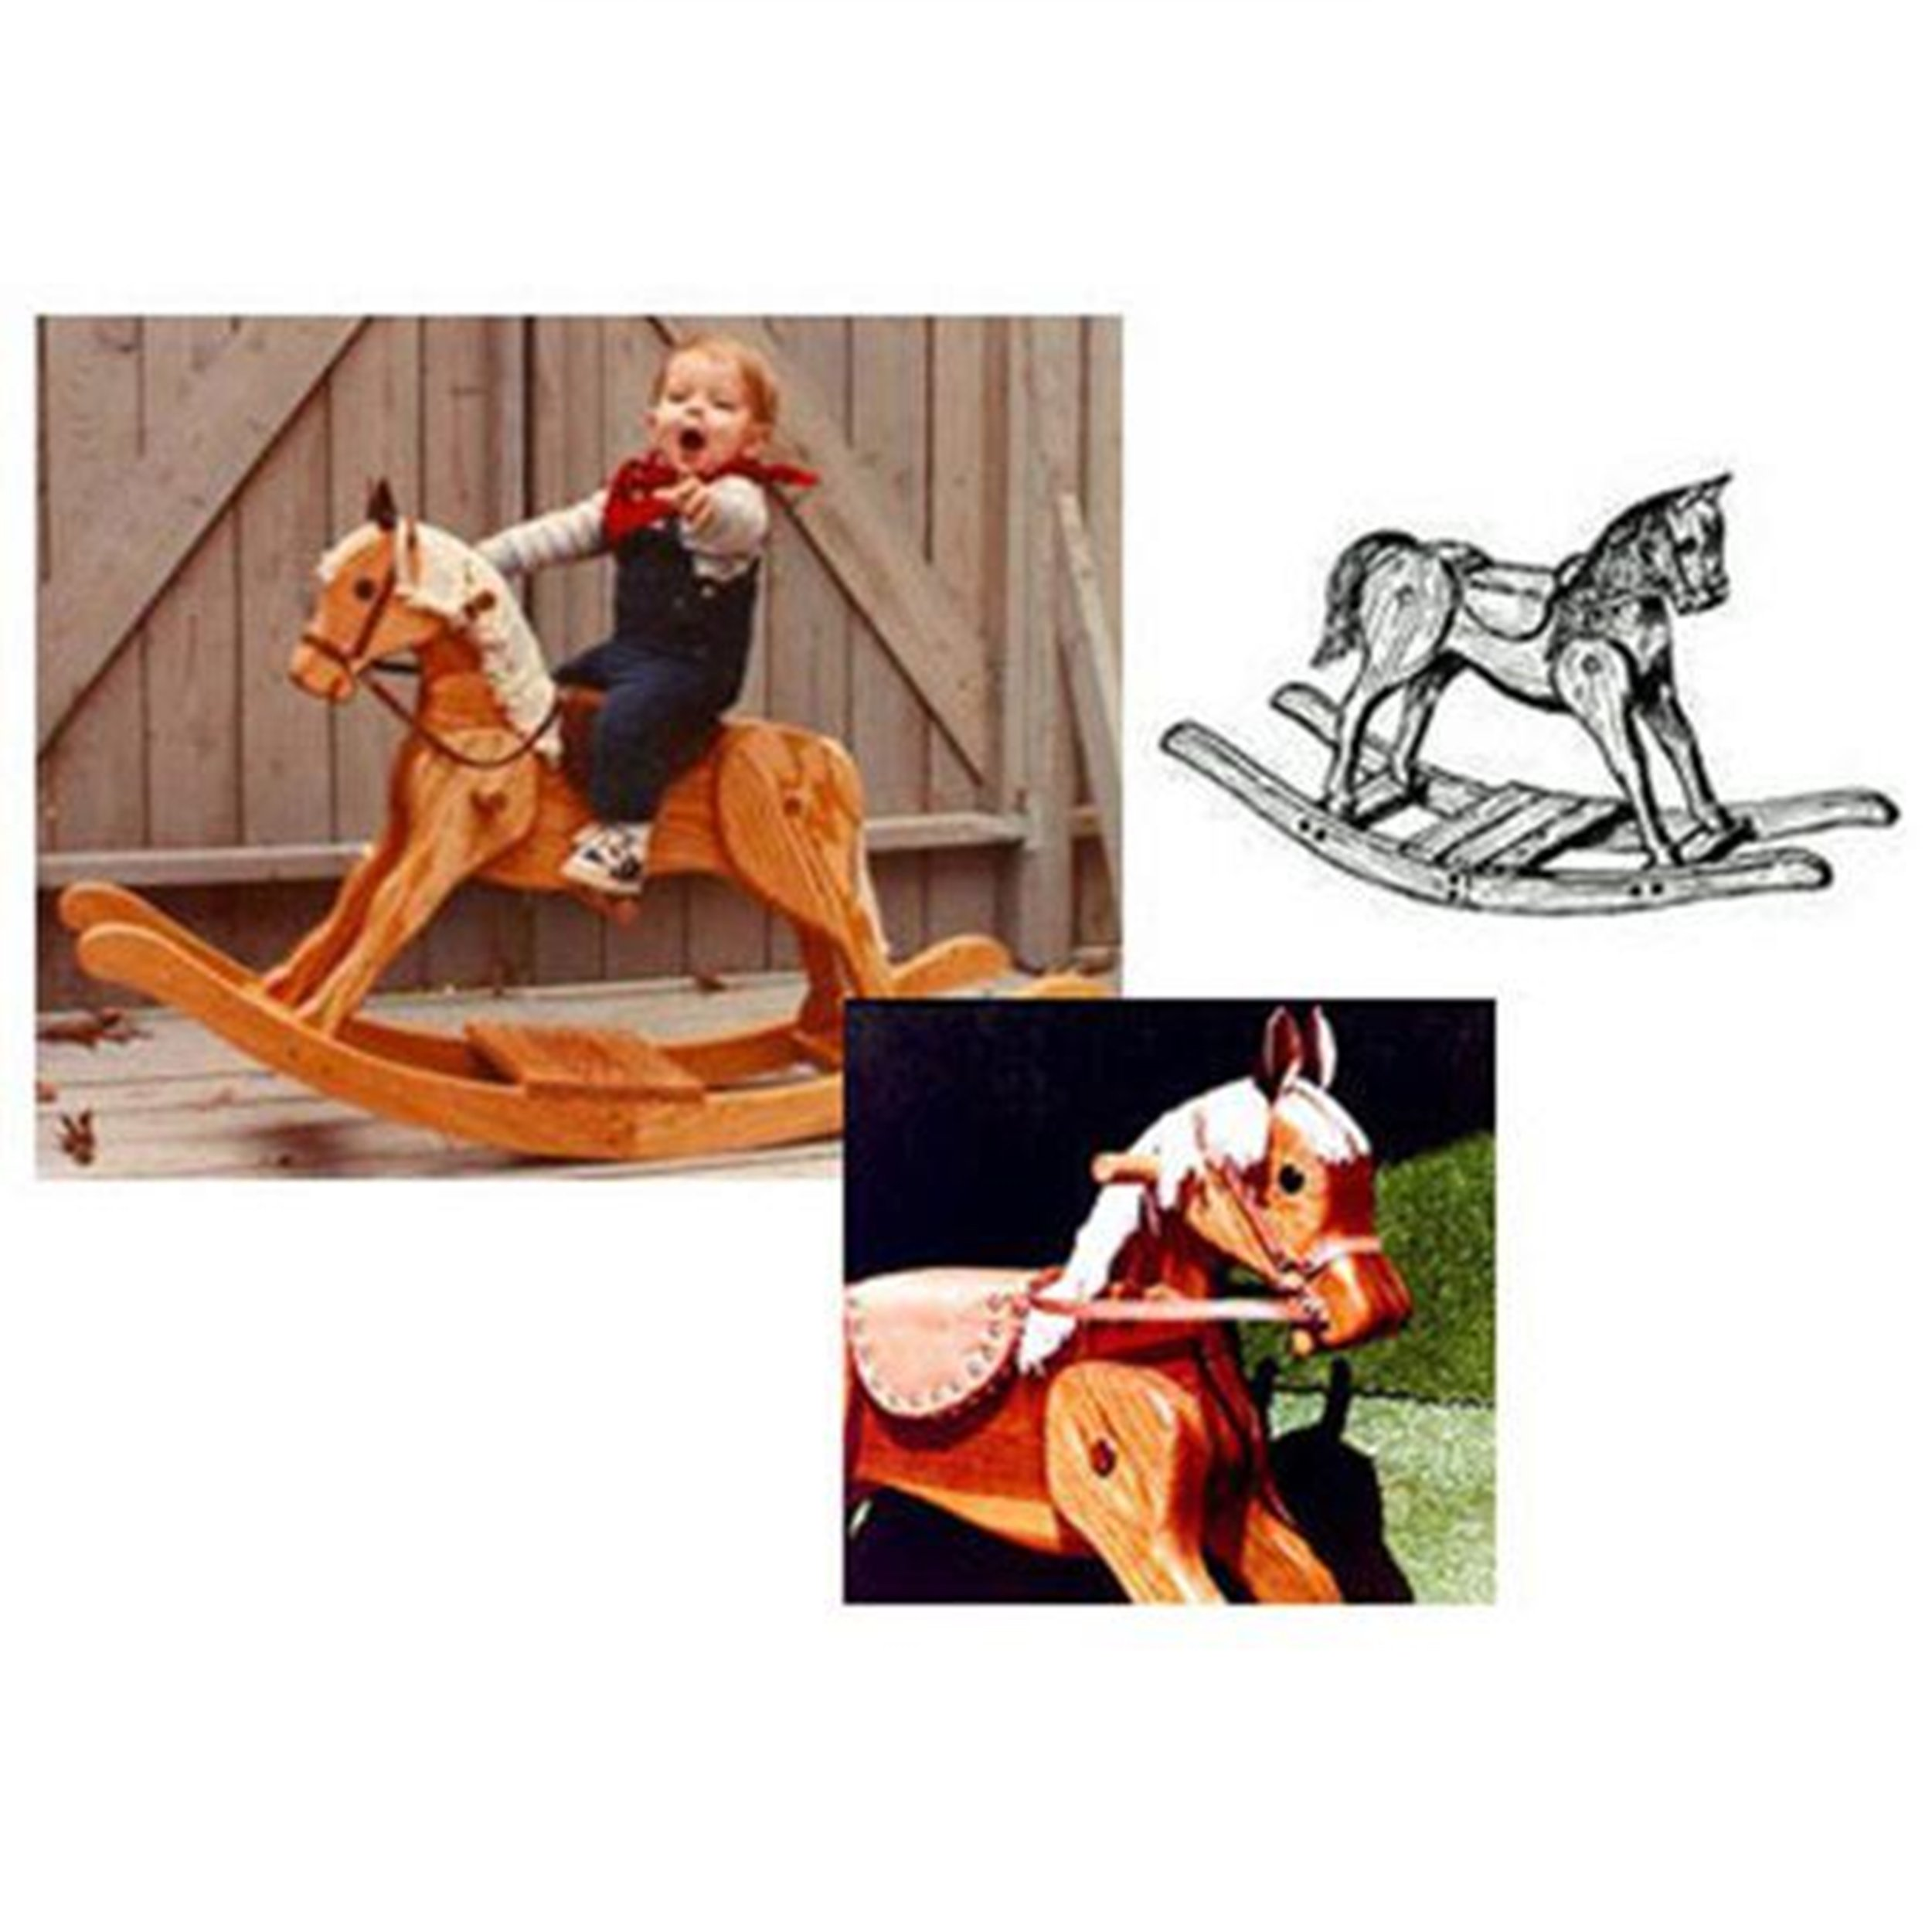 Woodworking Project Paper Plan to Build Merrilegs Rocking Horse by WOODCRAFT